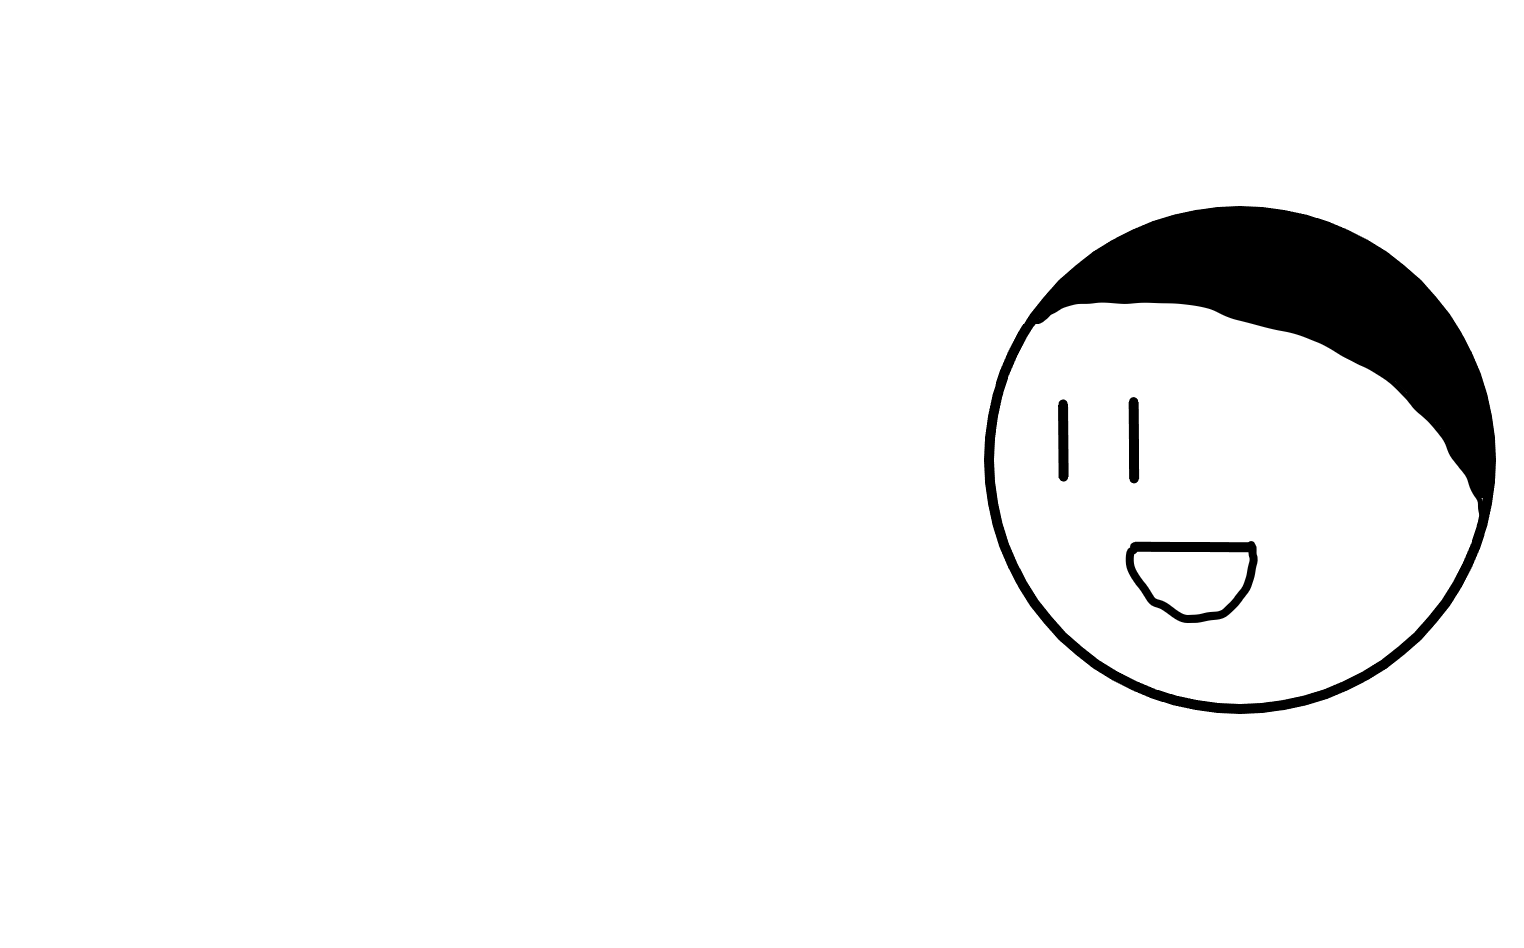 Talking face - looking right and smiling.png